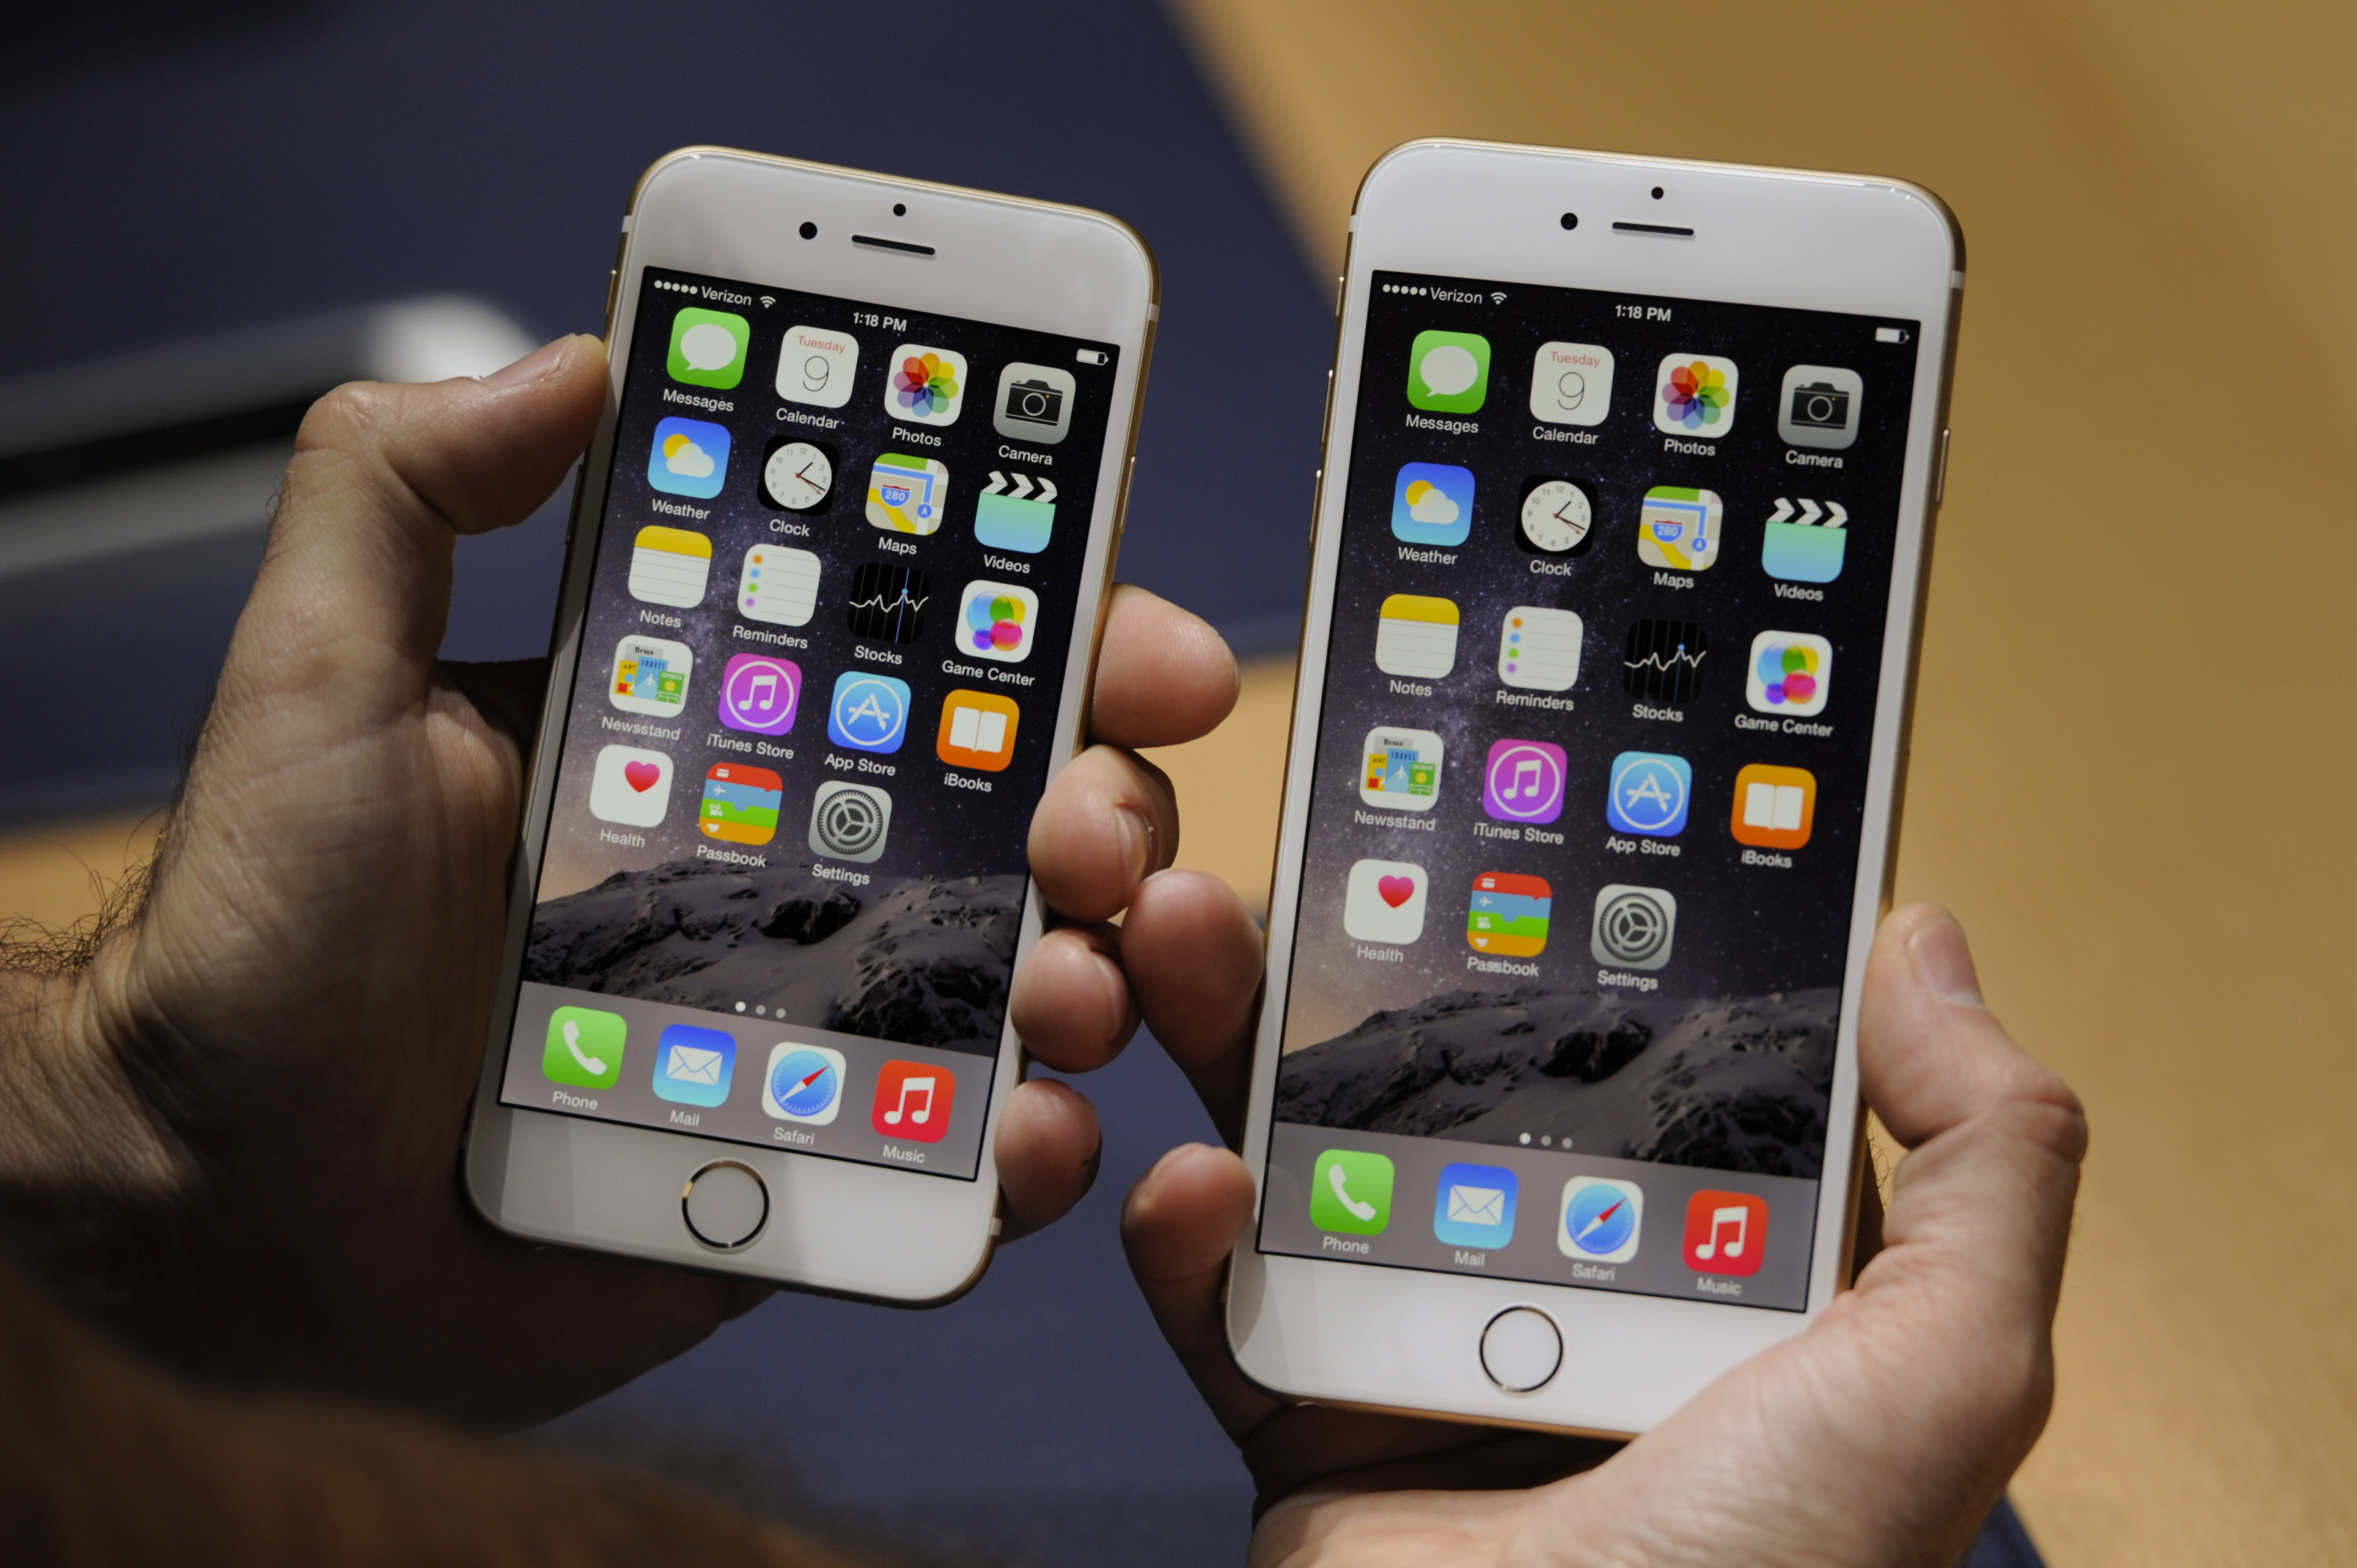 The Apple Inc. iPhone 6, left, and iPhone 6 Plus displayed after a product announcement at Flint Center in Cupertino, California, U.S., on Tuesday, Sept. 9, 2014.